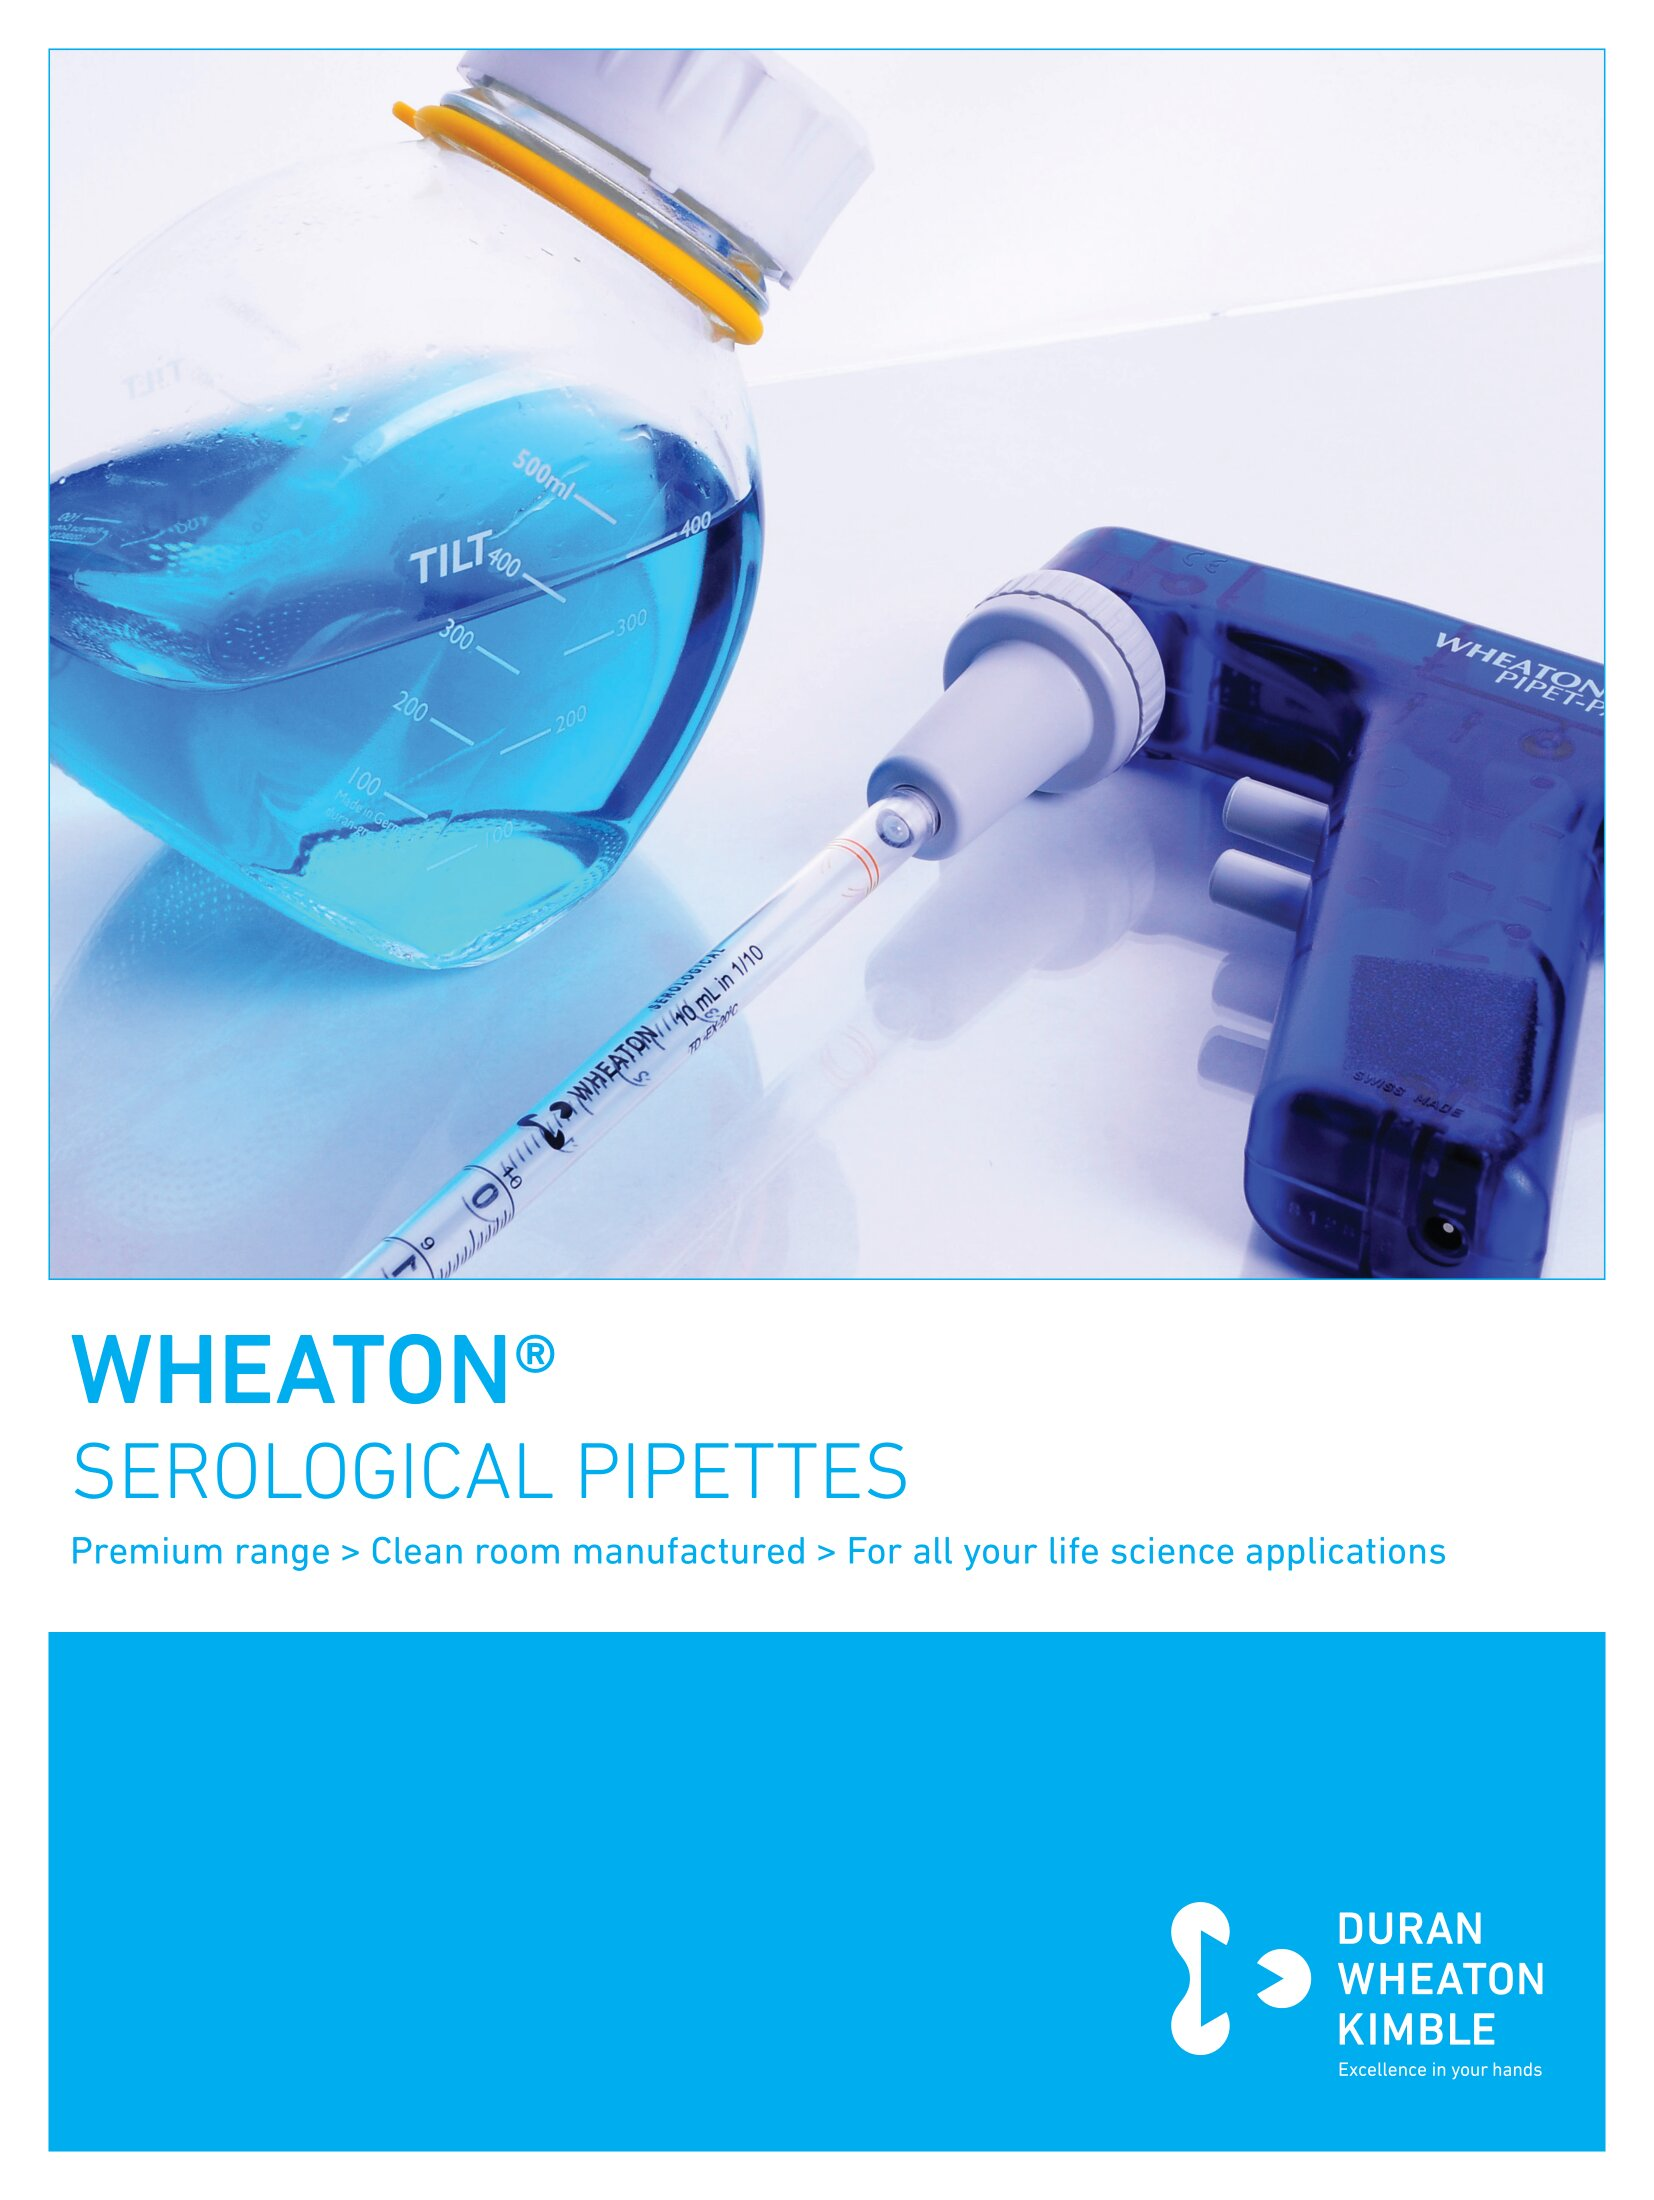 WHEATON® Serological Pipettes